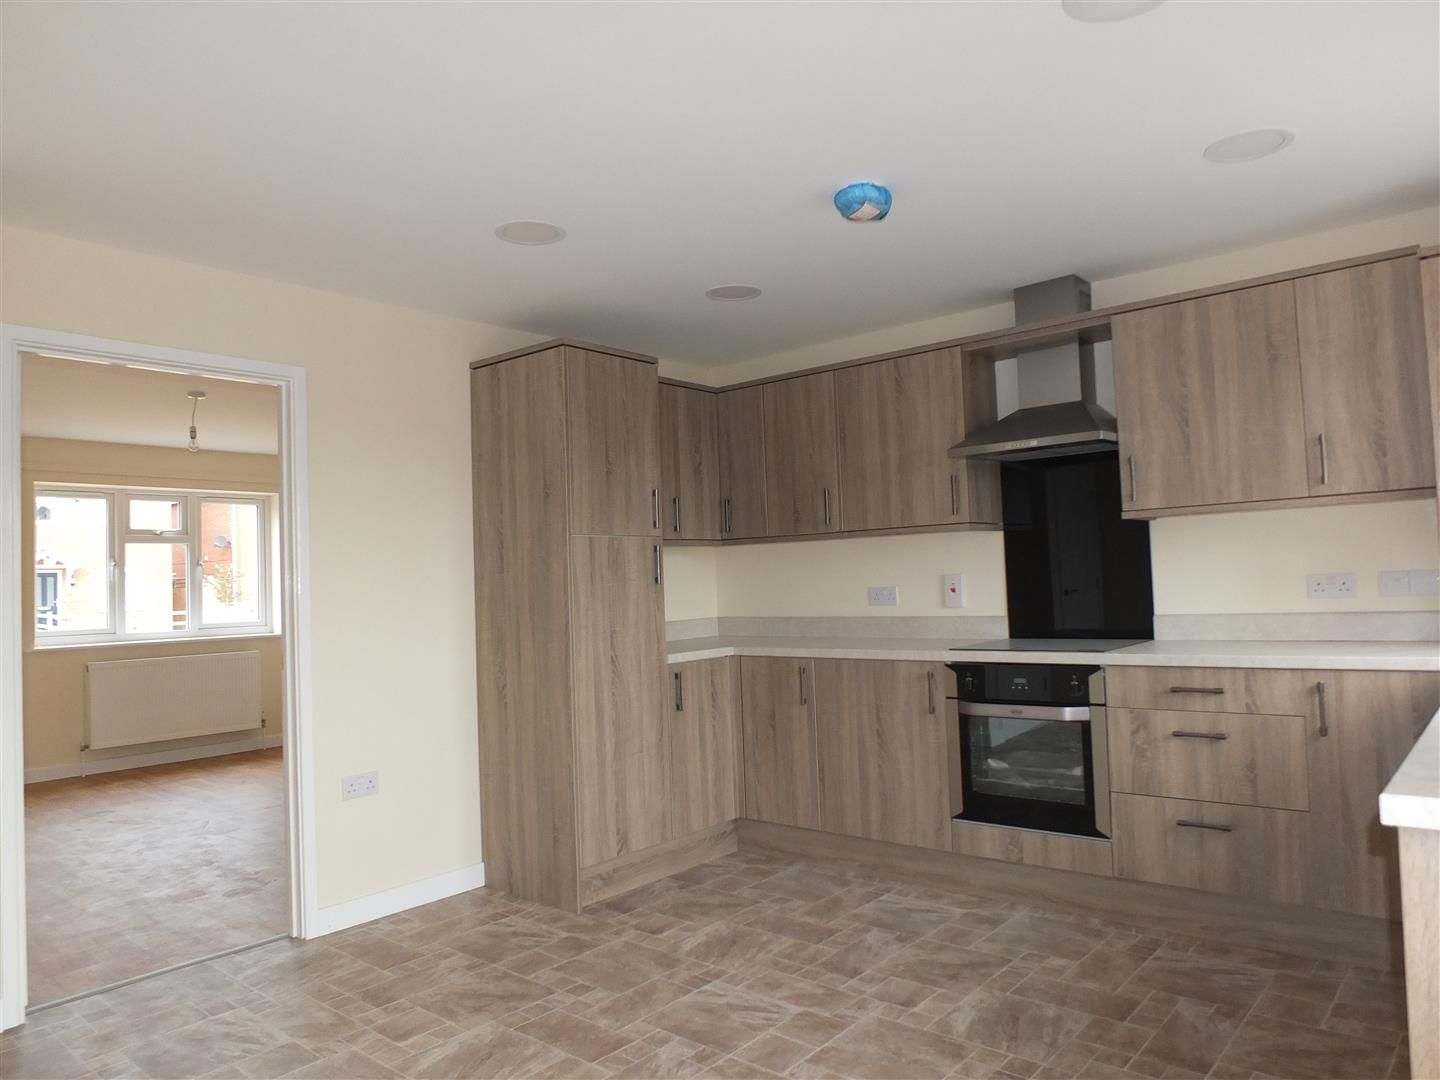 3 bed house to rent in Long Sutton, PE12 9LE  - Property Image 7